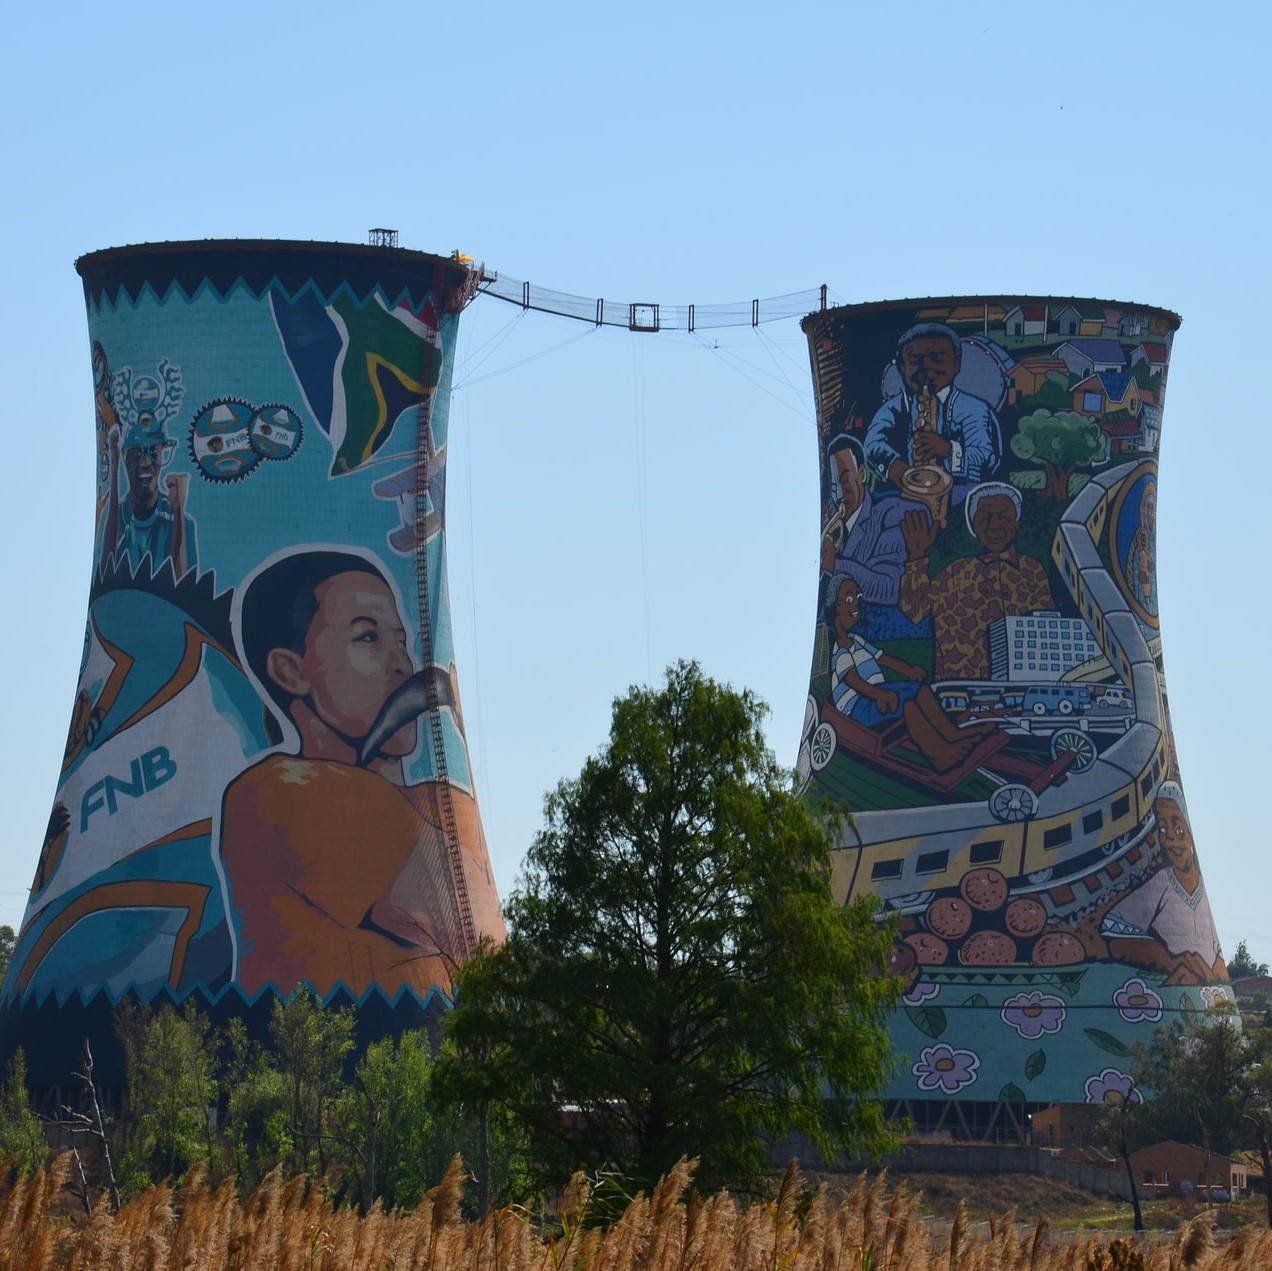 Cooling towers in Soweto used as a Bunjee jumping centre